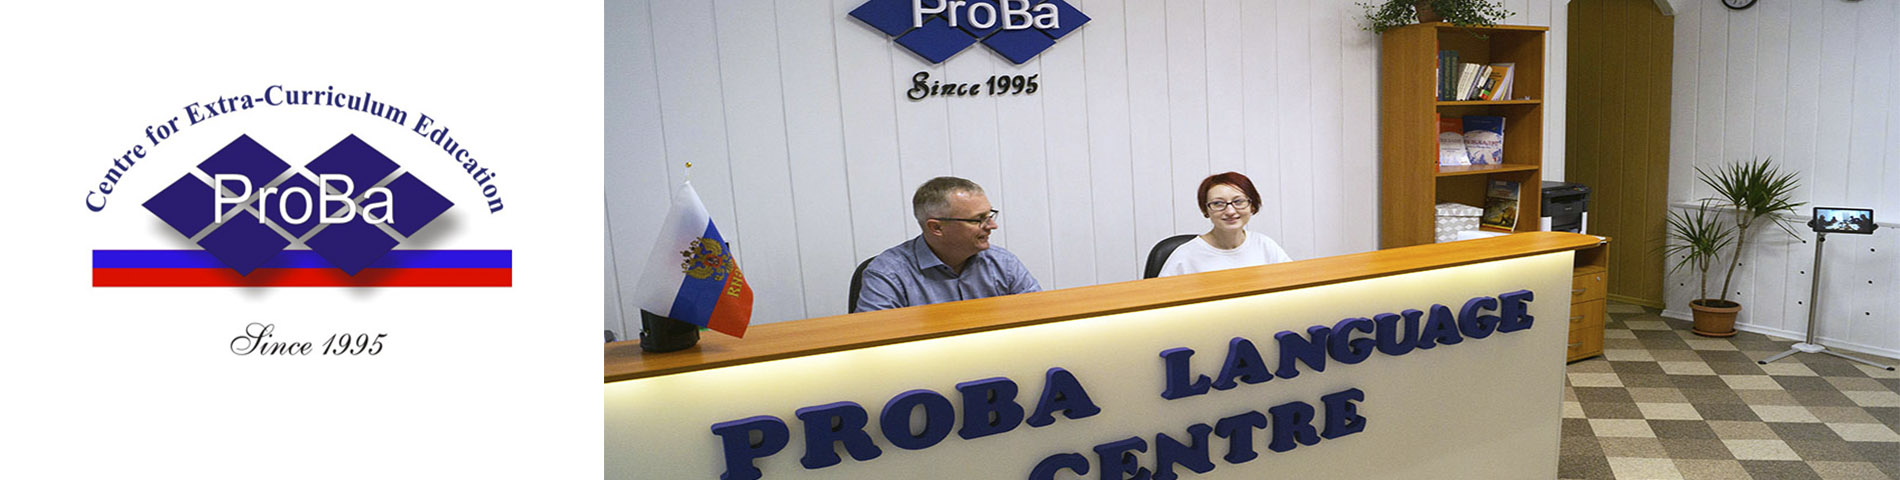 ProBa Language Centre banner